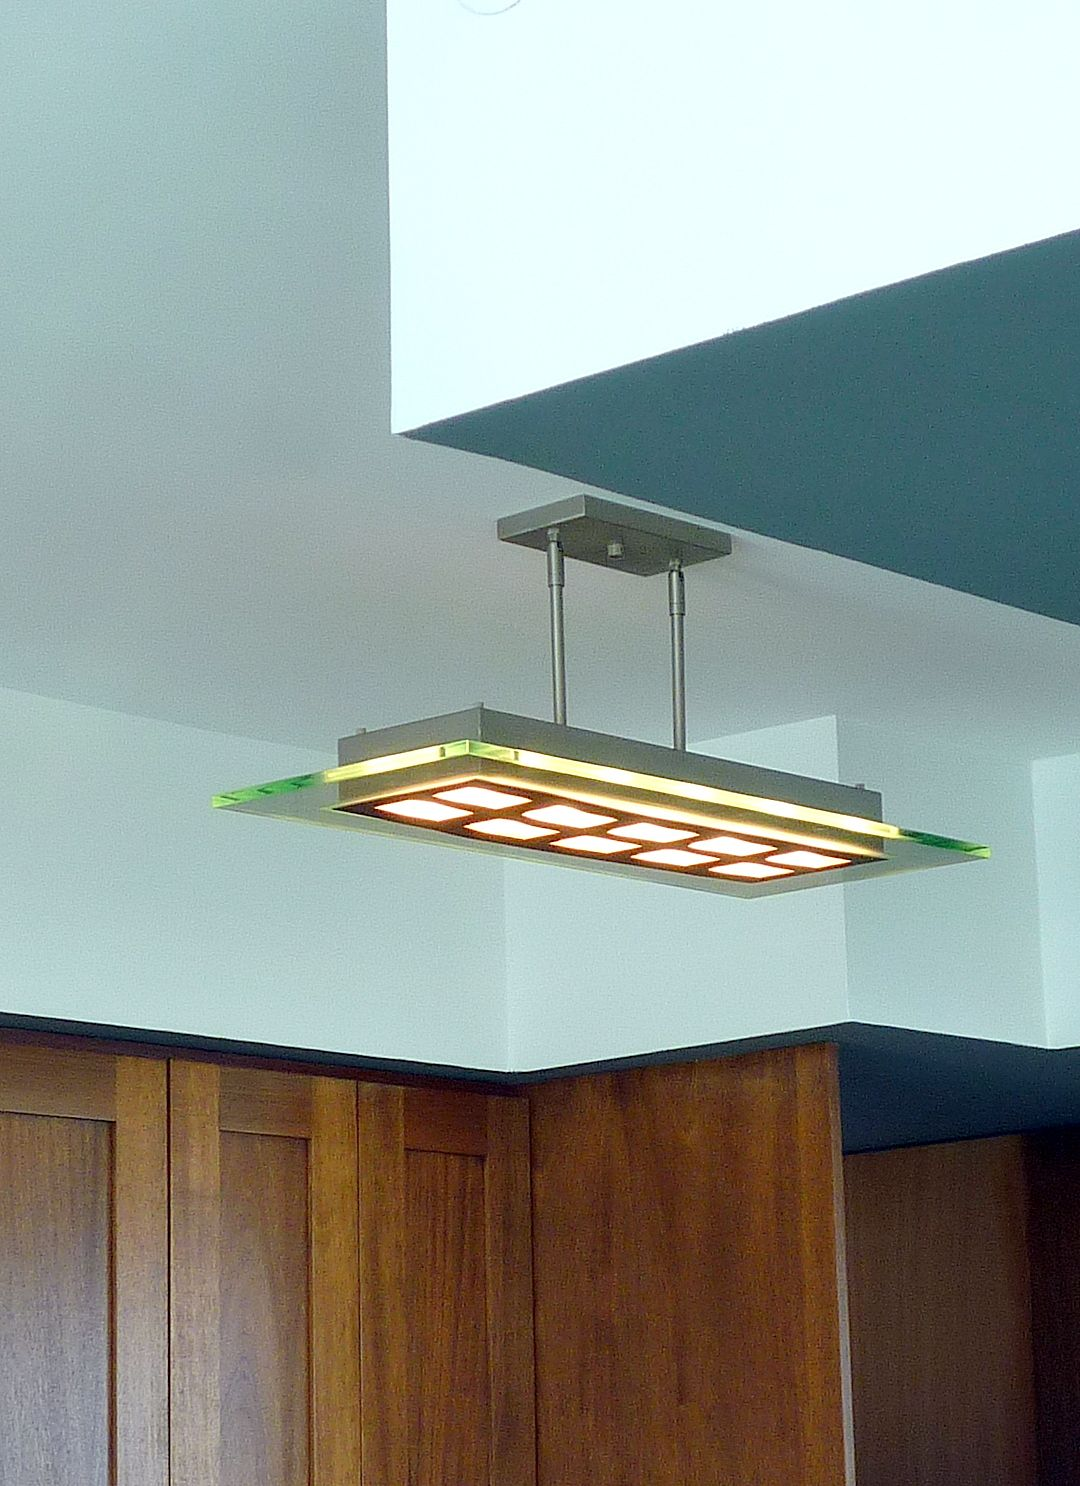 Replacing a flourescent \'cloud\' fixture, this LED light illuminates ...